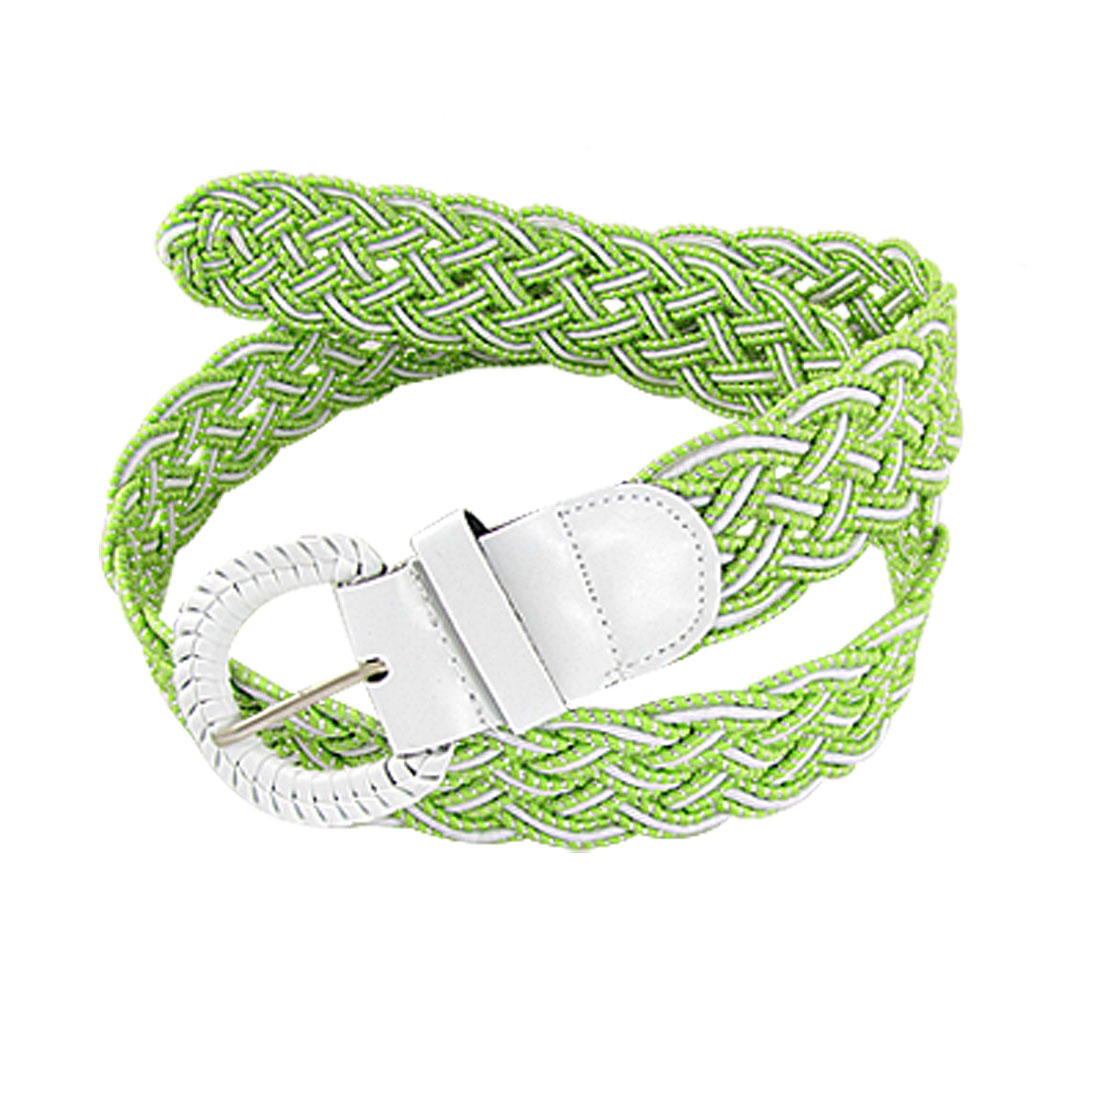 D Shaped Prong Buckle Green White Glitter Braided Belt for Lady